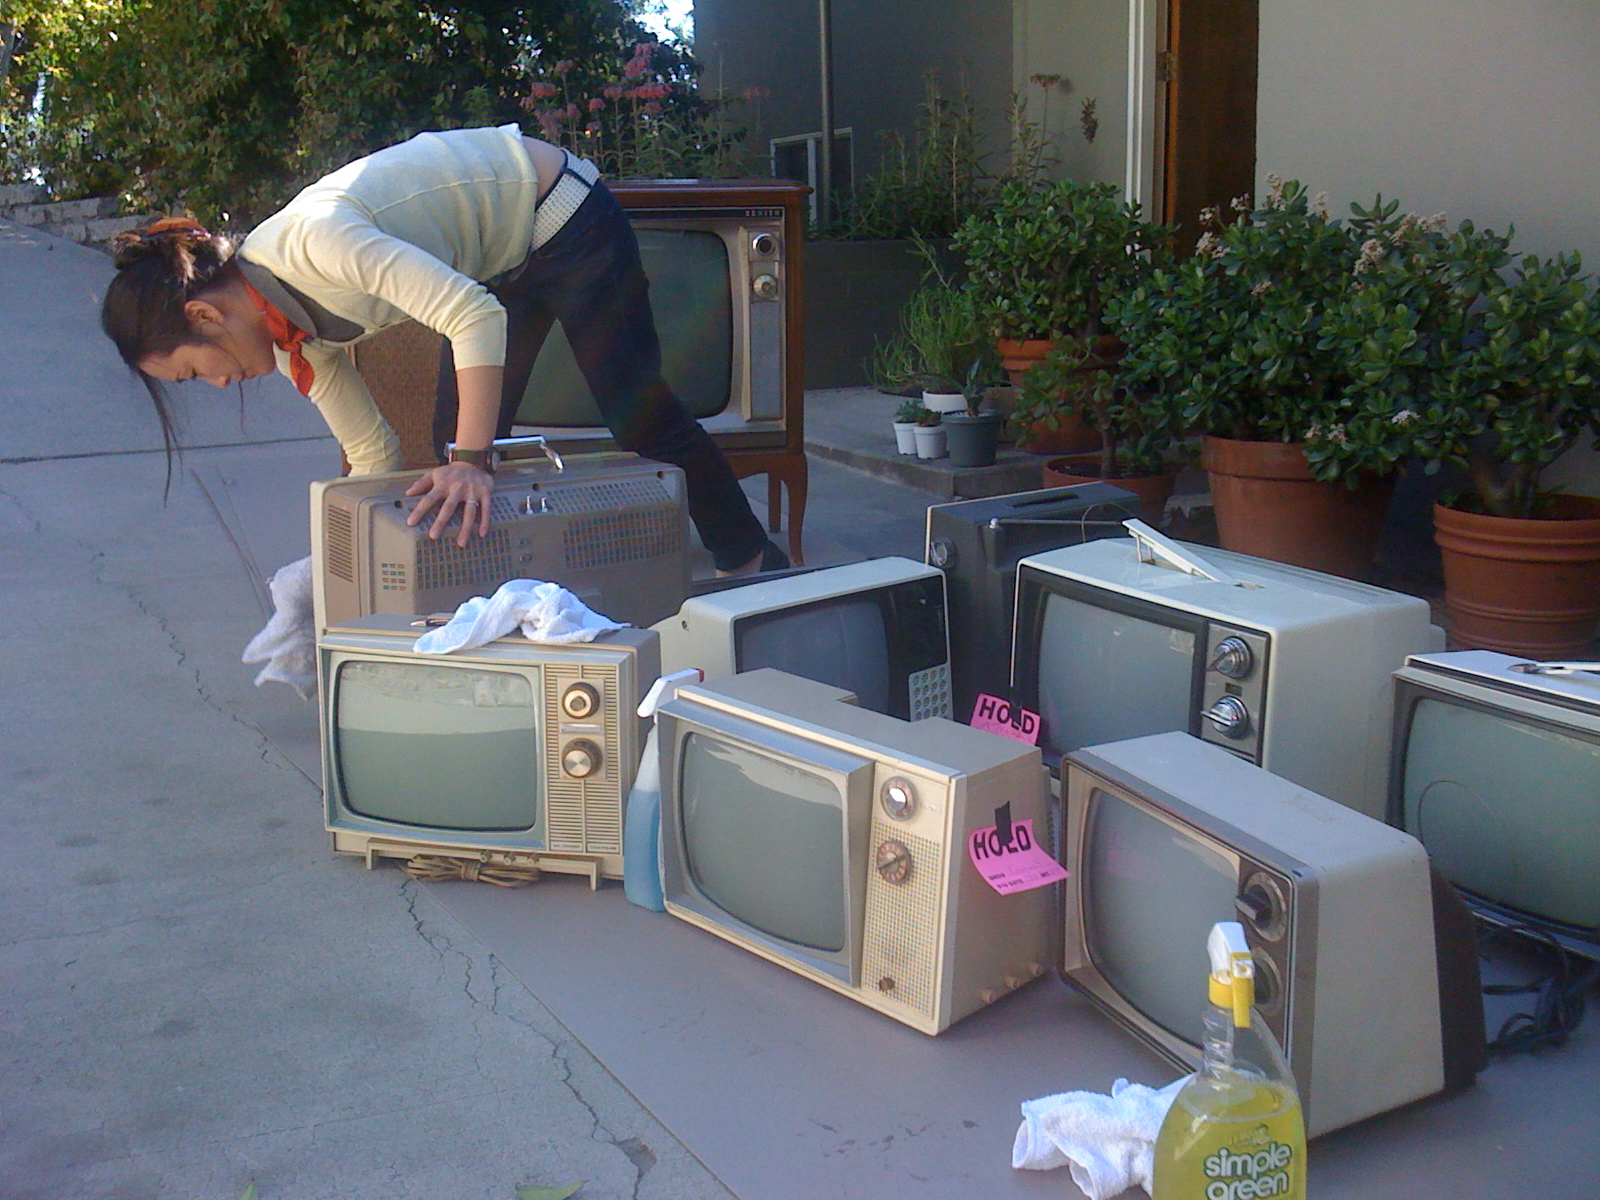 Jenny prepares the vintage televisions for their close-ups.